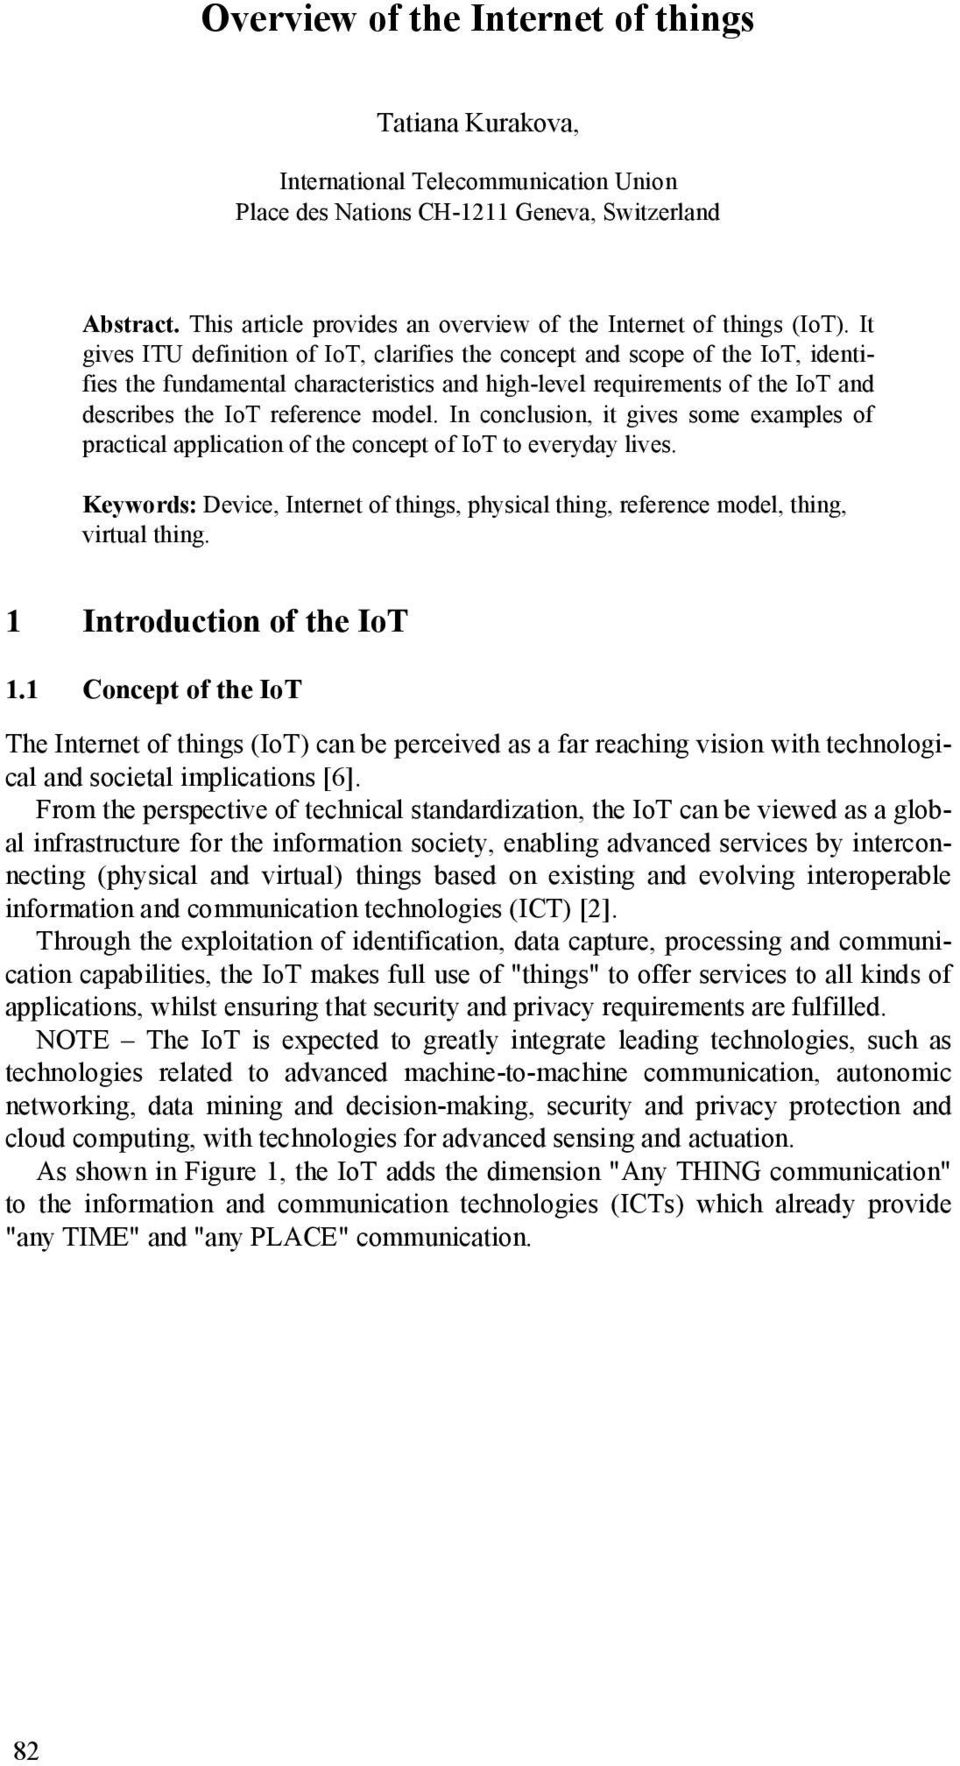 It gives ITU definition of IoT, clarifies the concept and scope of the IoT, identifies the fundamental characteristics and high-level requirements of the IoT and describes the IoT reference model.